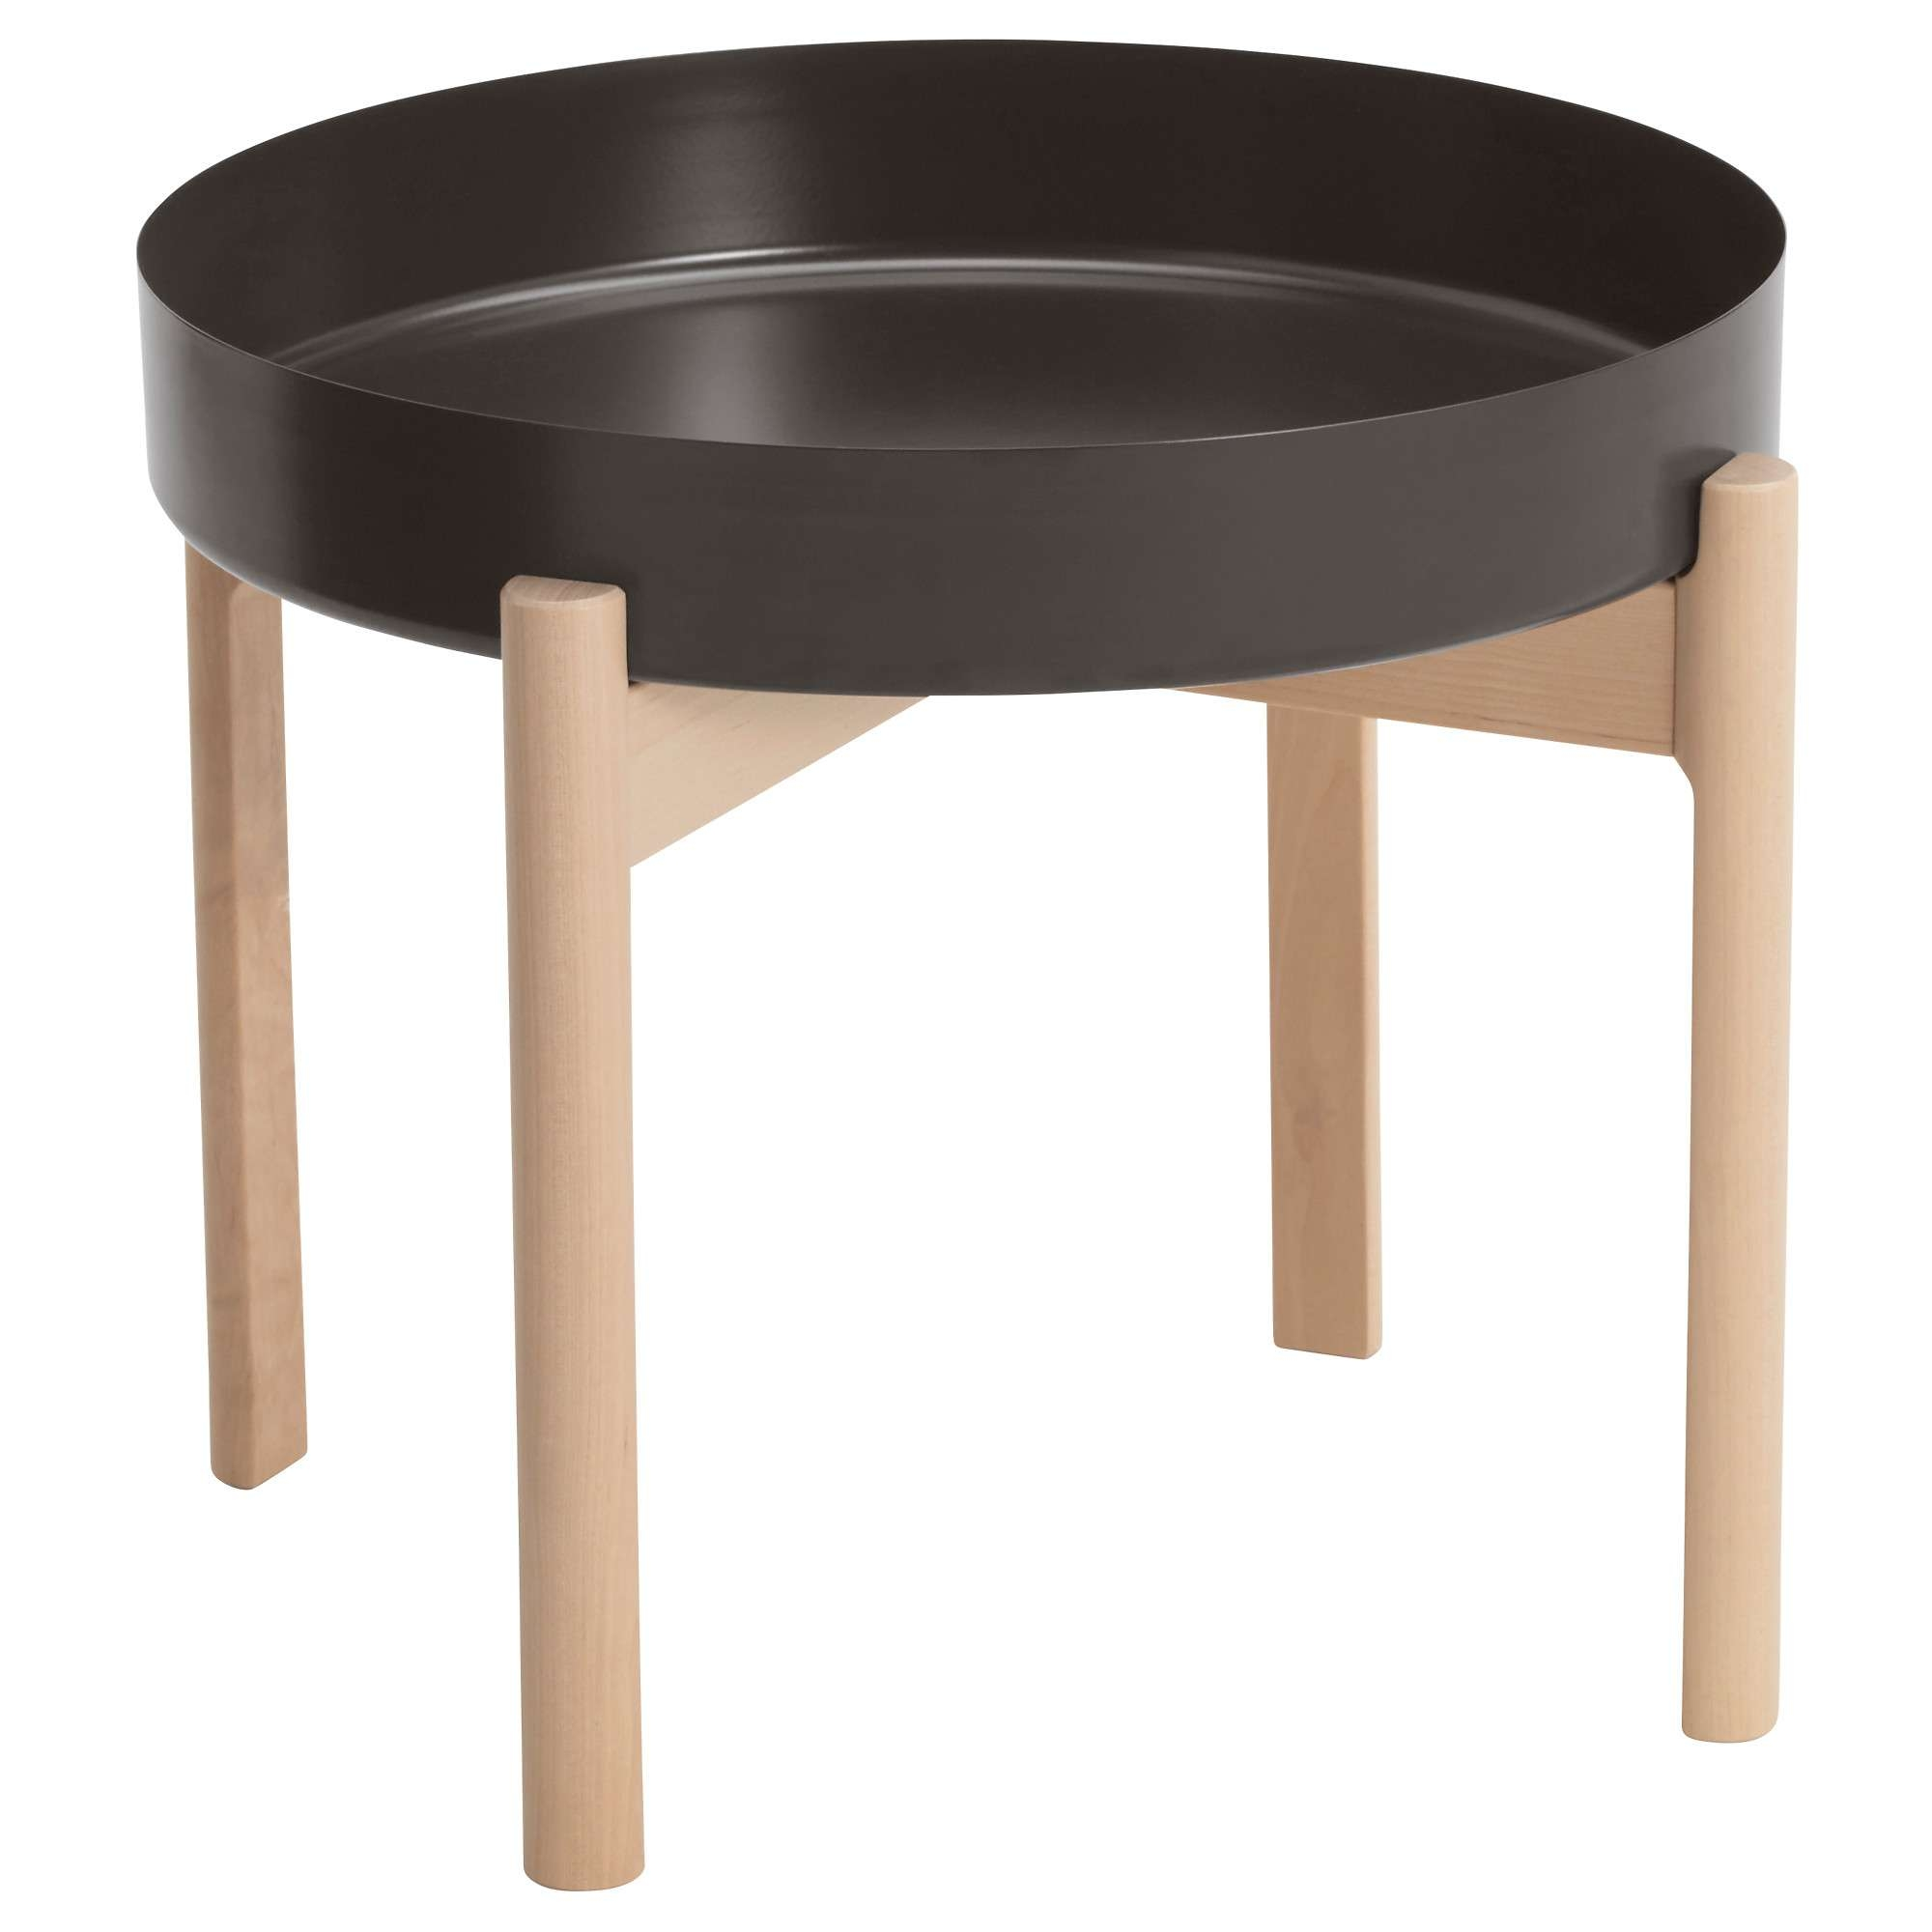 Famous Wooden Coffee Tables Intended For Coffee Tables – Glass & Wooden Coffee Tables – Ikea (View 17 of 20)